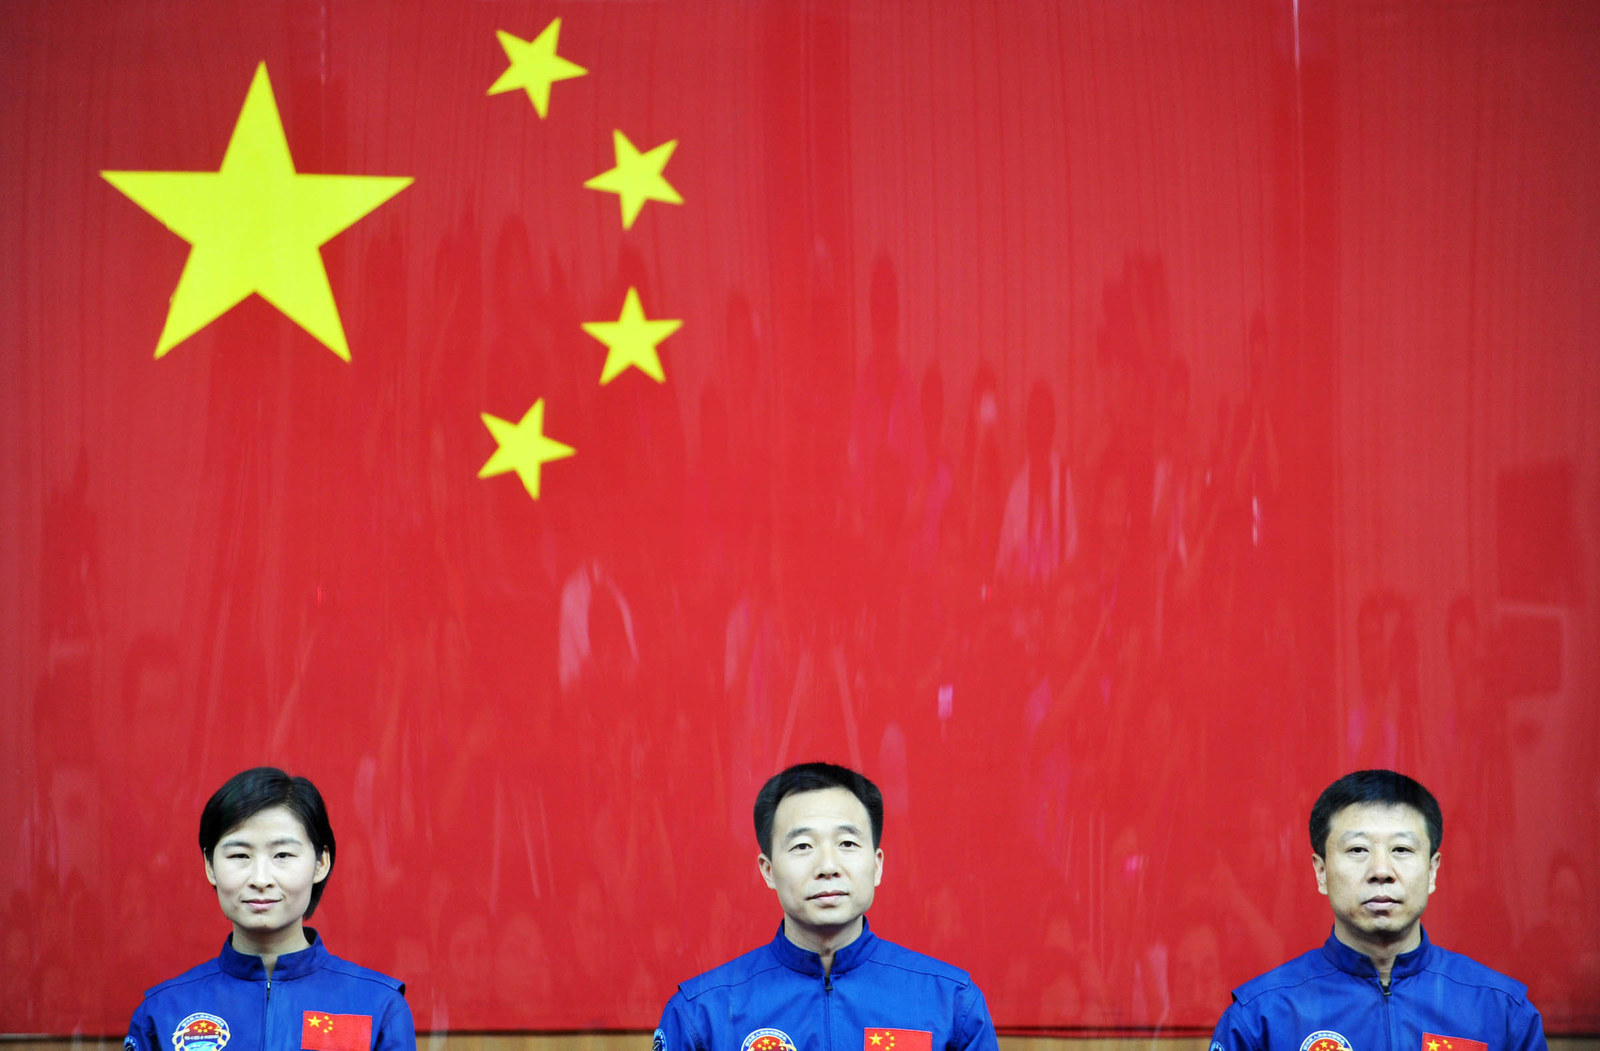 2012 Taikonauts Liu Yang, Jing Haipeng, and Liu Wang attend a press conference at the Jiuquan Satellite Launch Center on June 15, 2012, in Jiuquan, China. The Shenzhou-9 manned spacecraft carrying three crew members launched at 6:37 p.m. on June 16, performing the country's first manned space docking mission with the orbiting Tiangong-1 unmanned space lab.